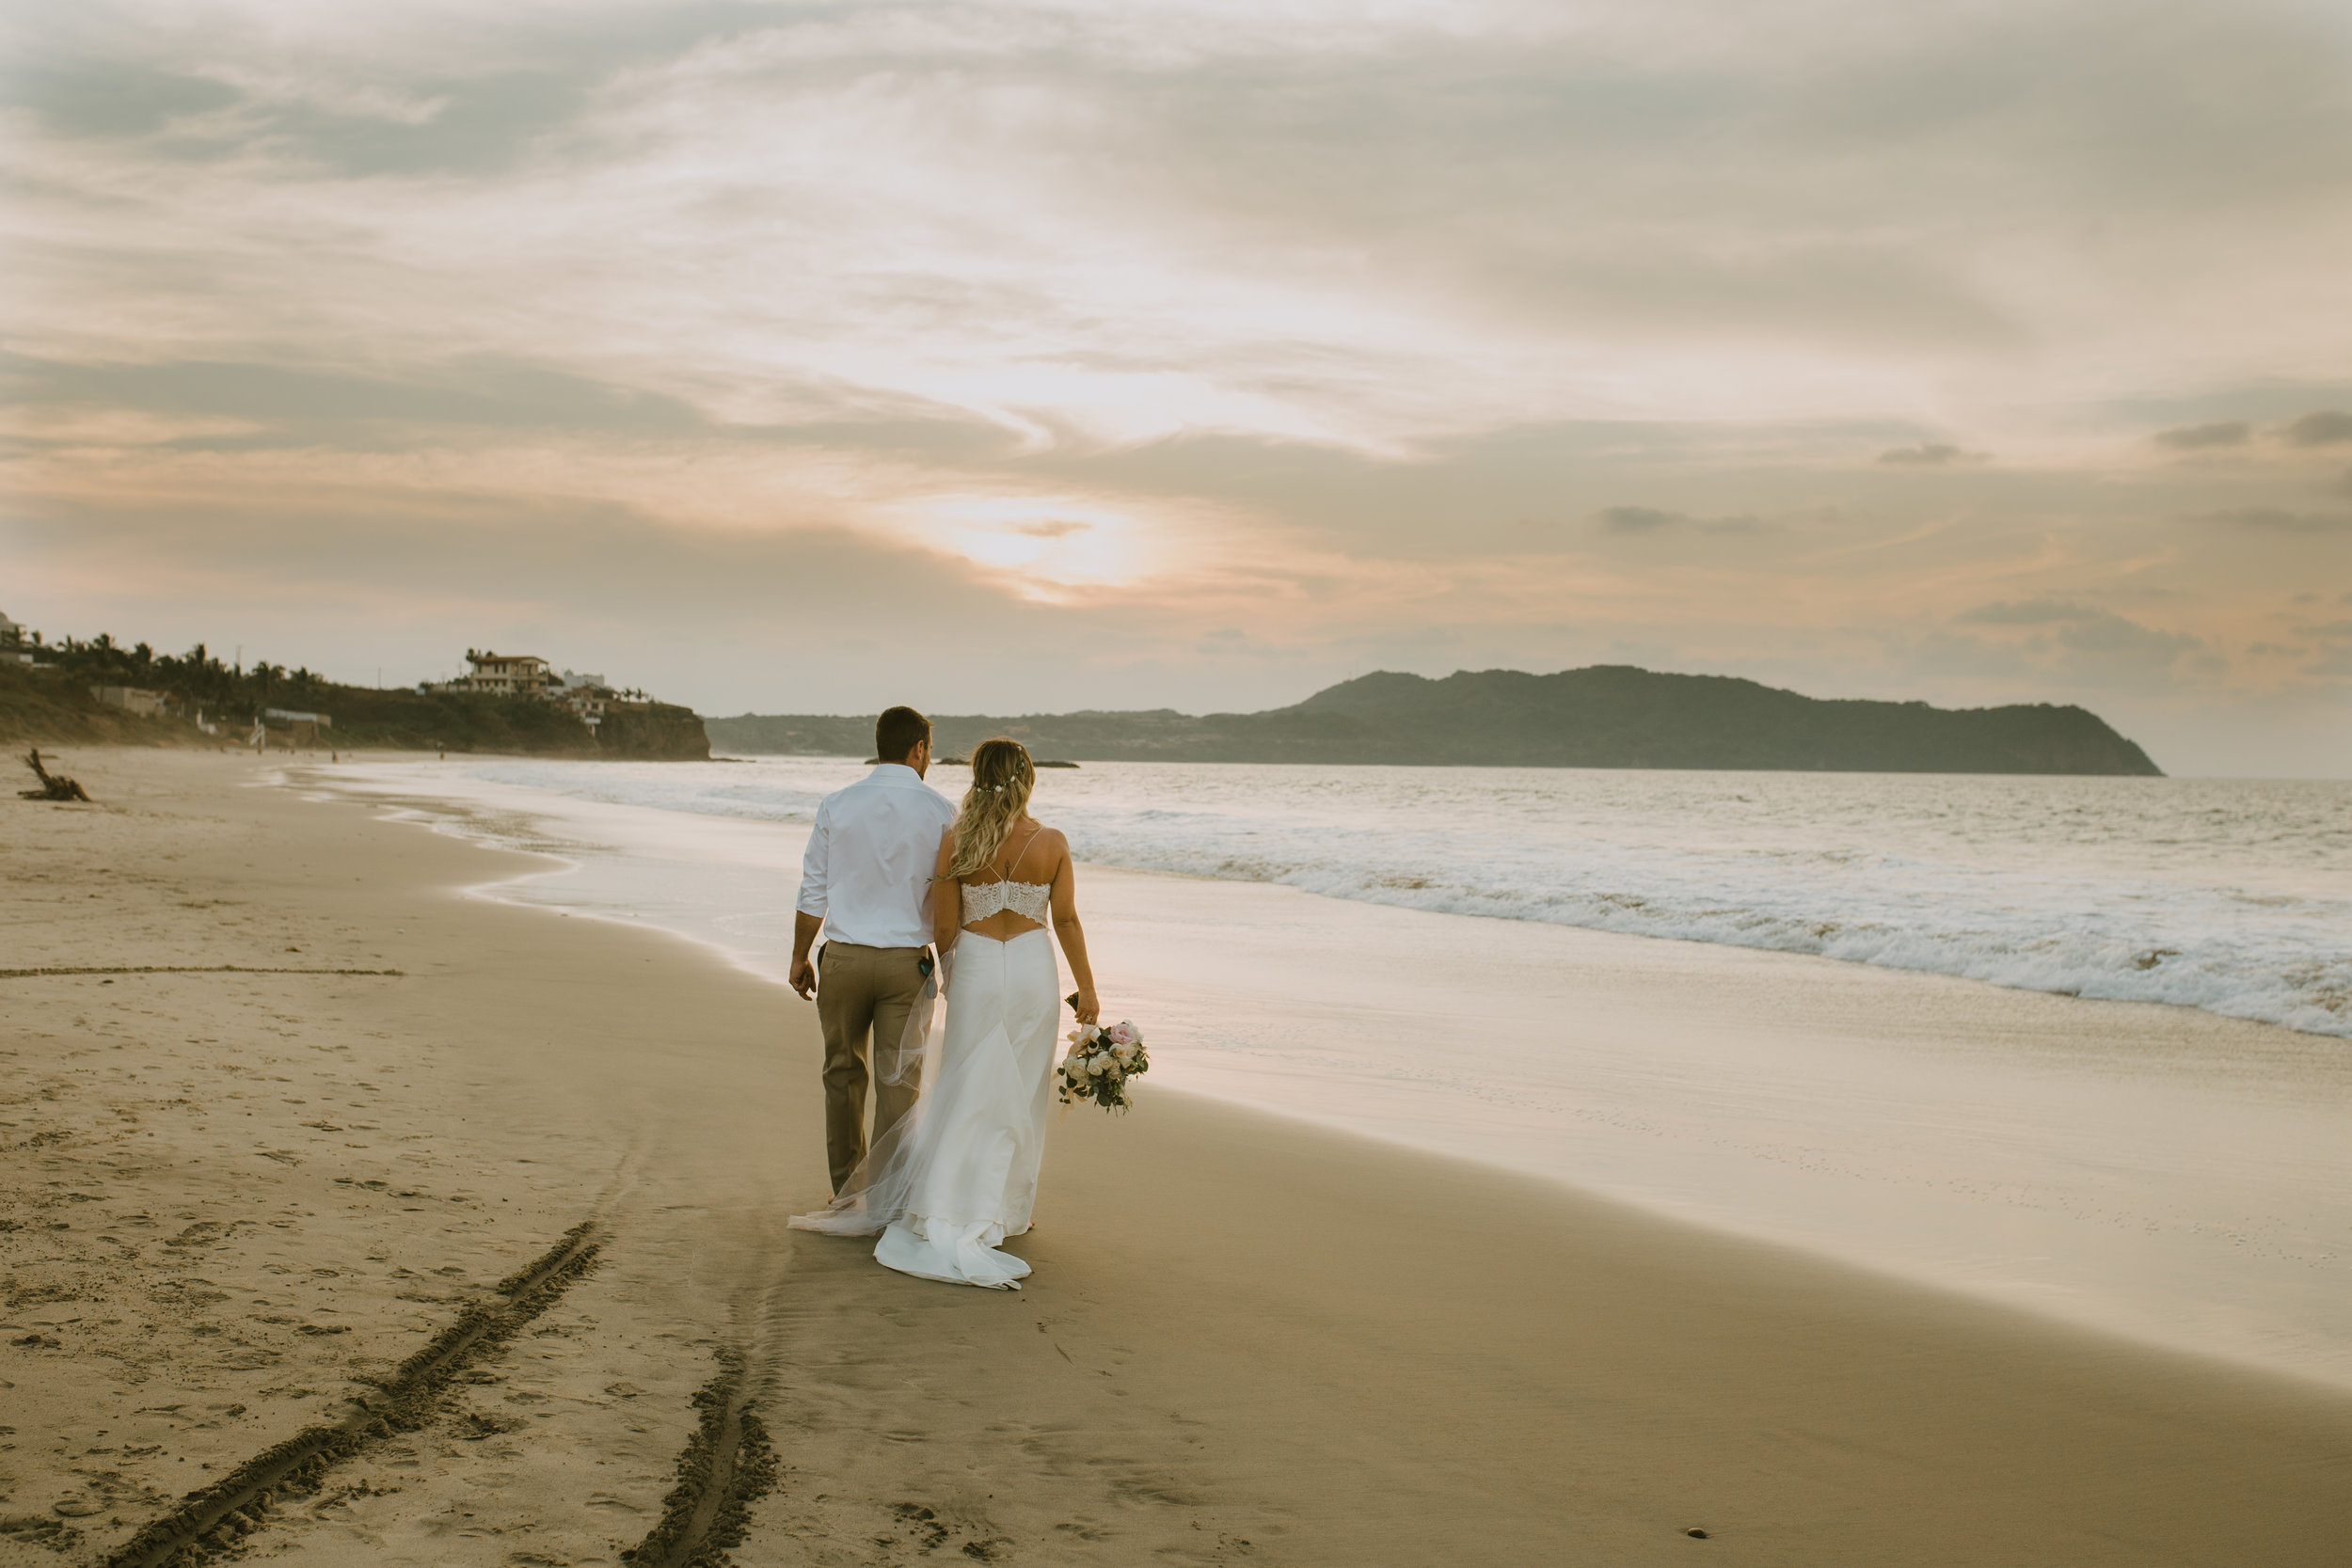 Destination Wedding in Puerto Vallarta, Mexico